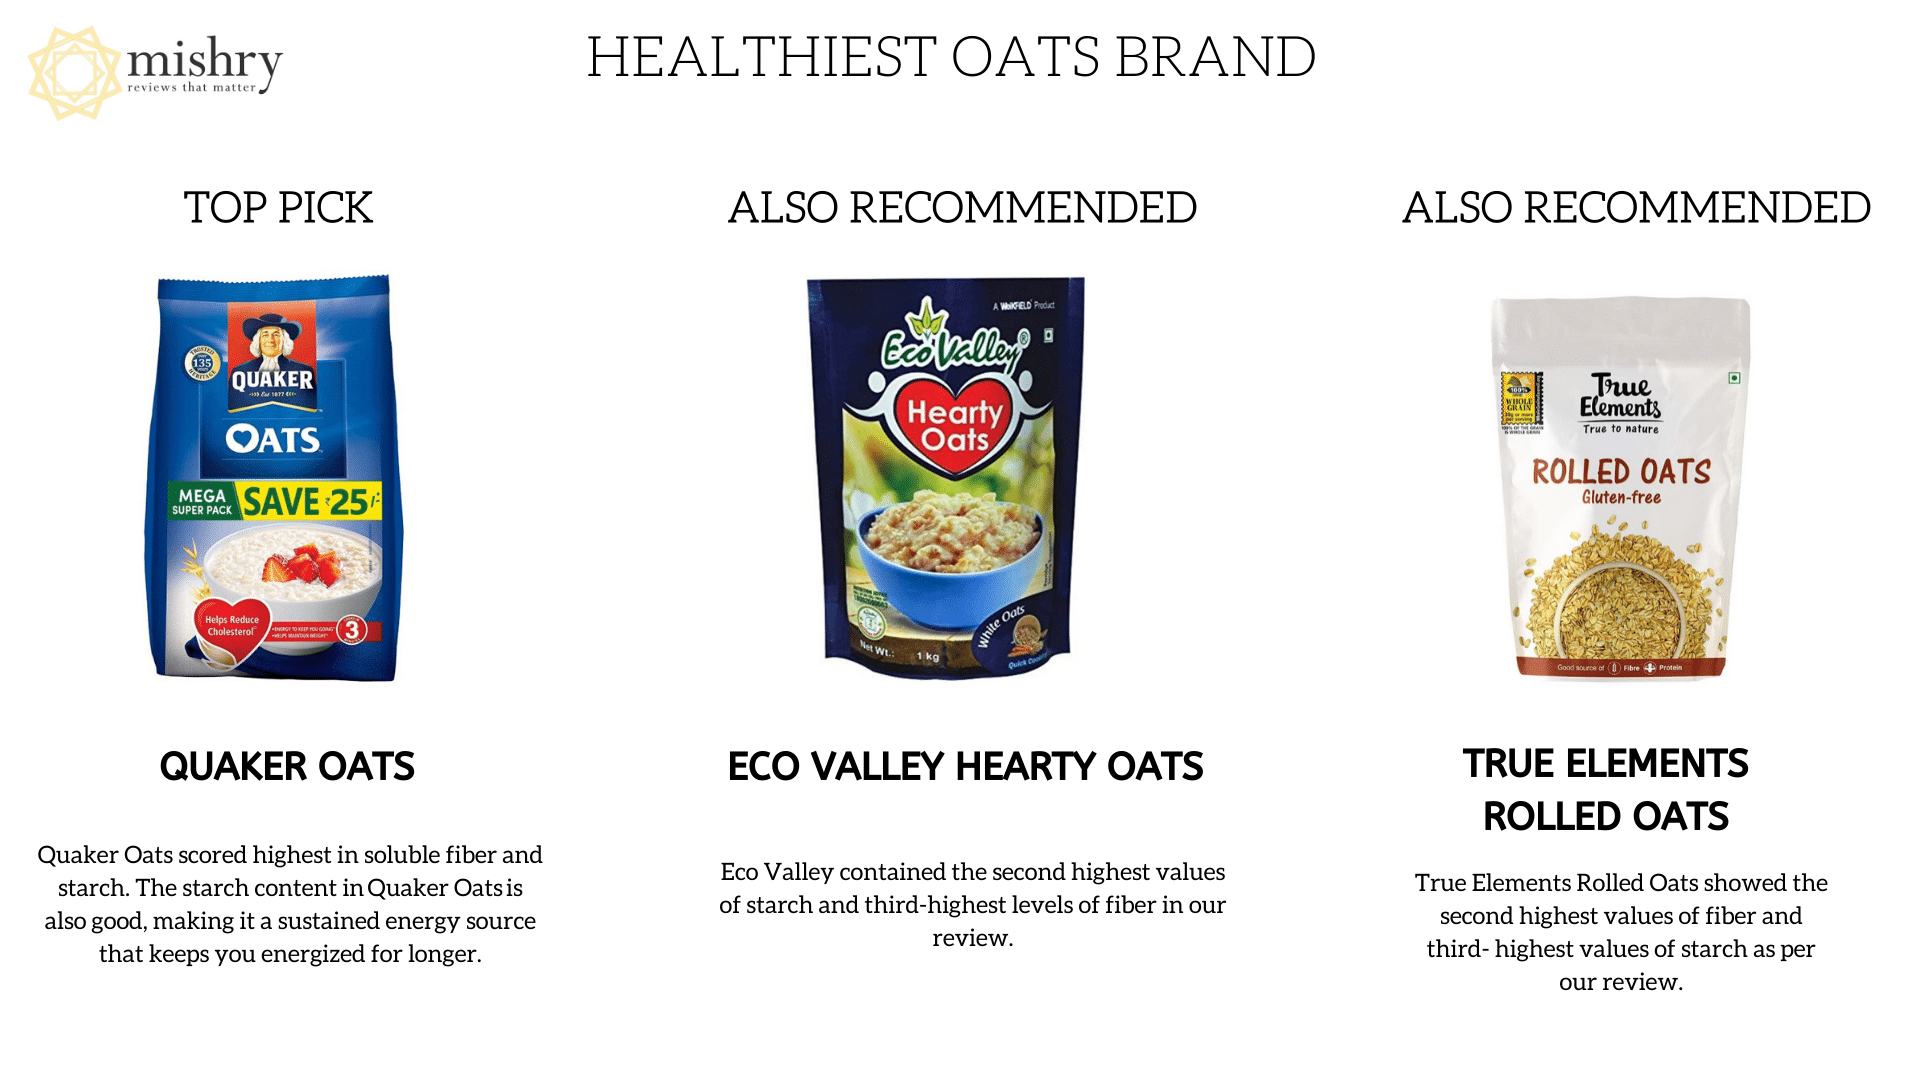 Healthiest Oats Brand With Max Fibre – Mishry Reviews